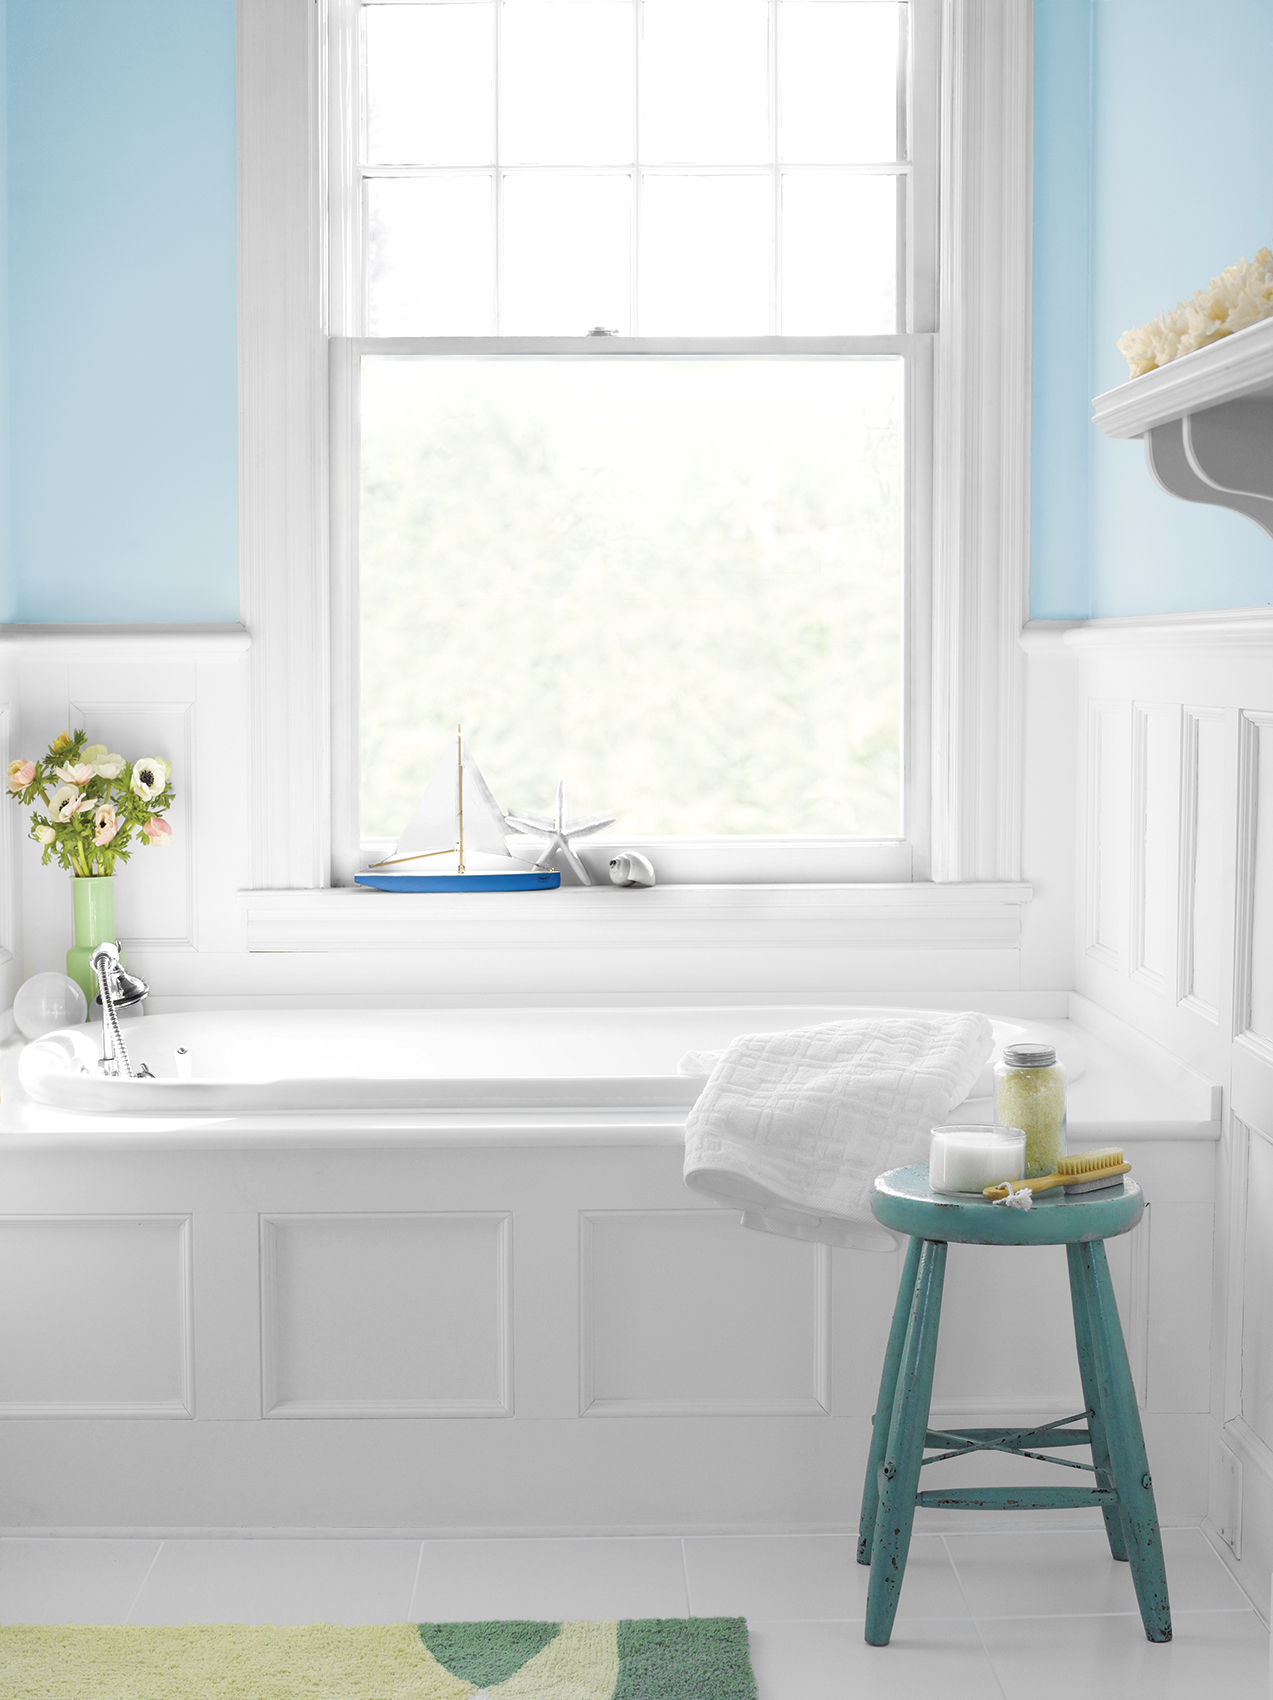 Clean bathtub in white and blue bathroom